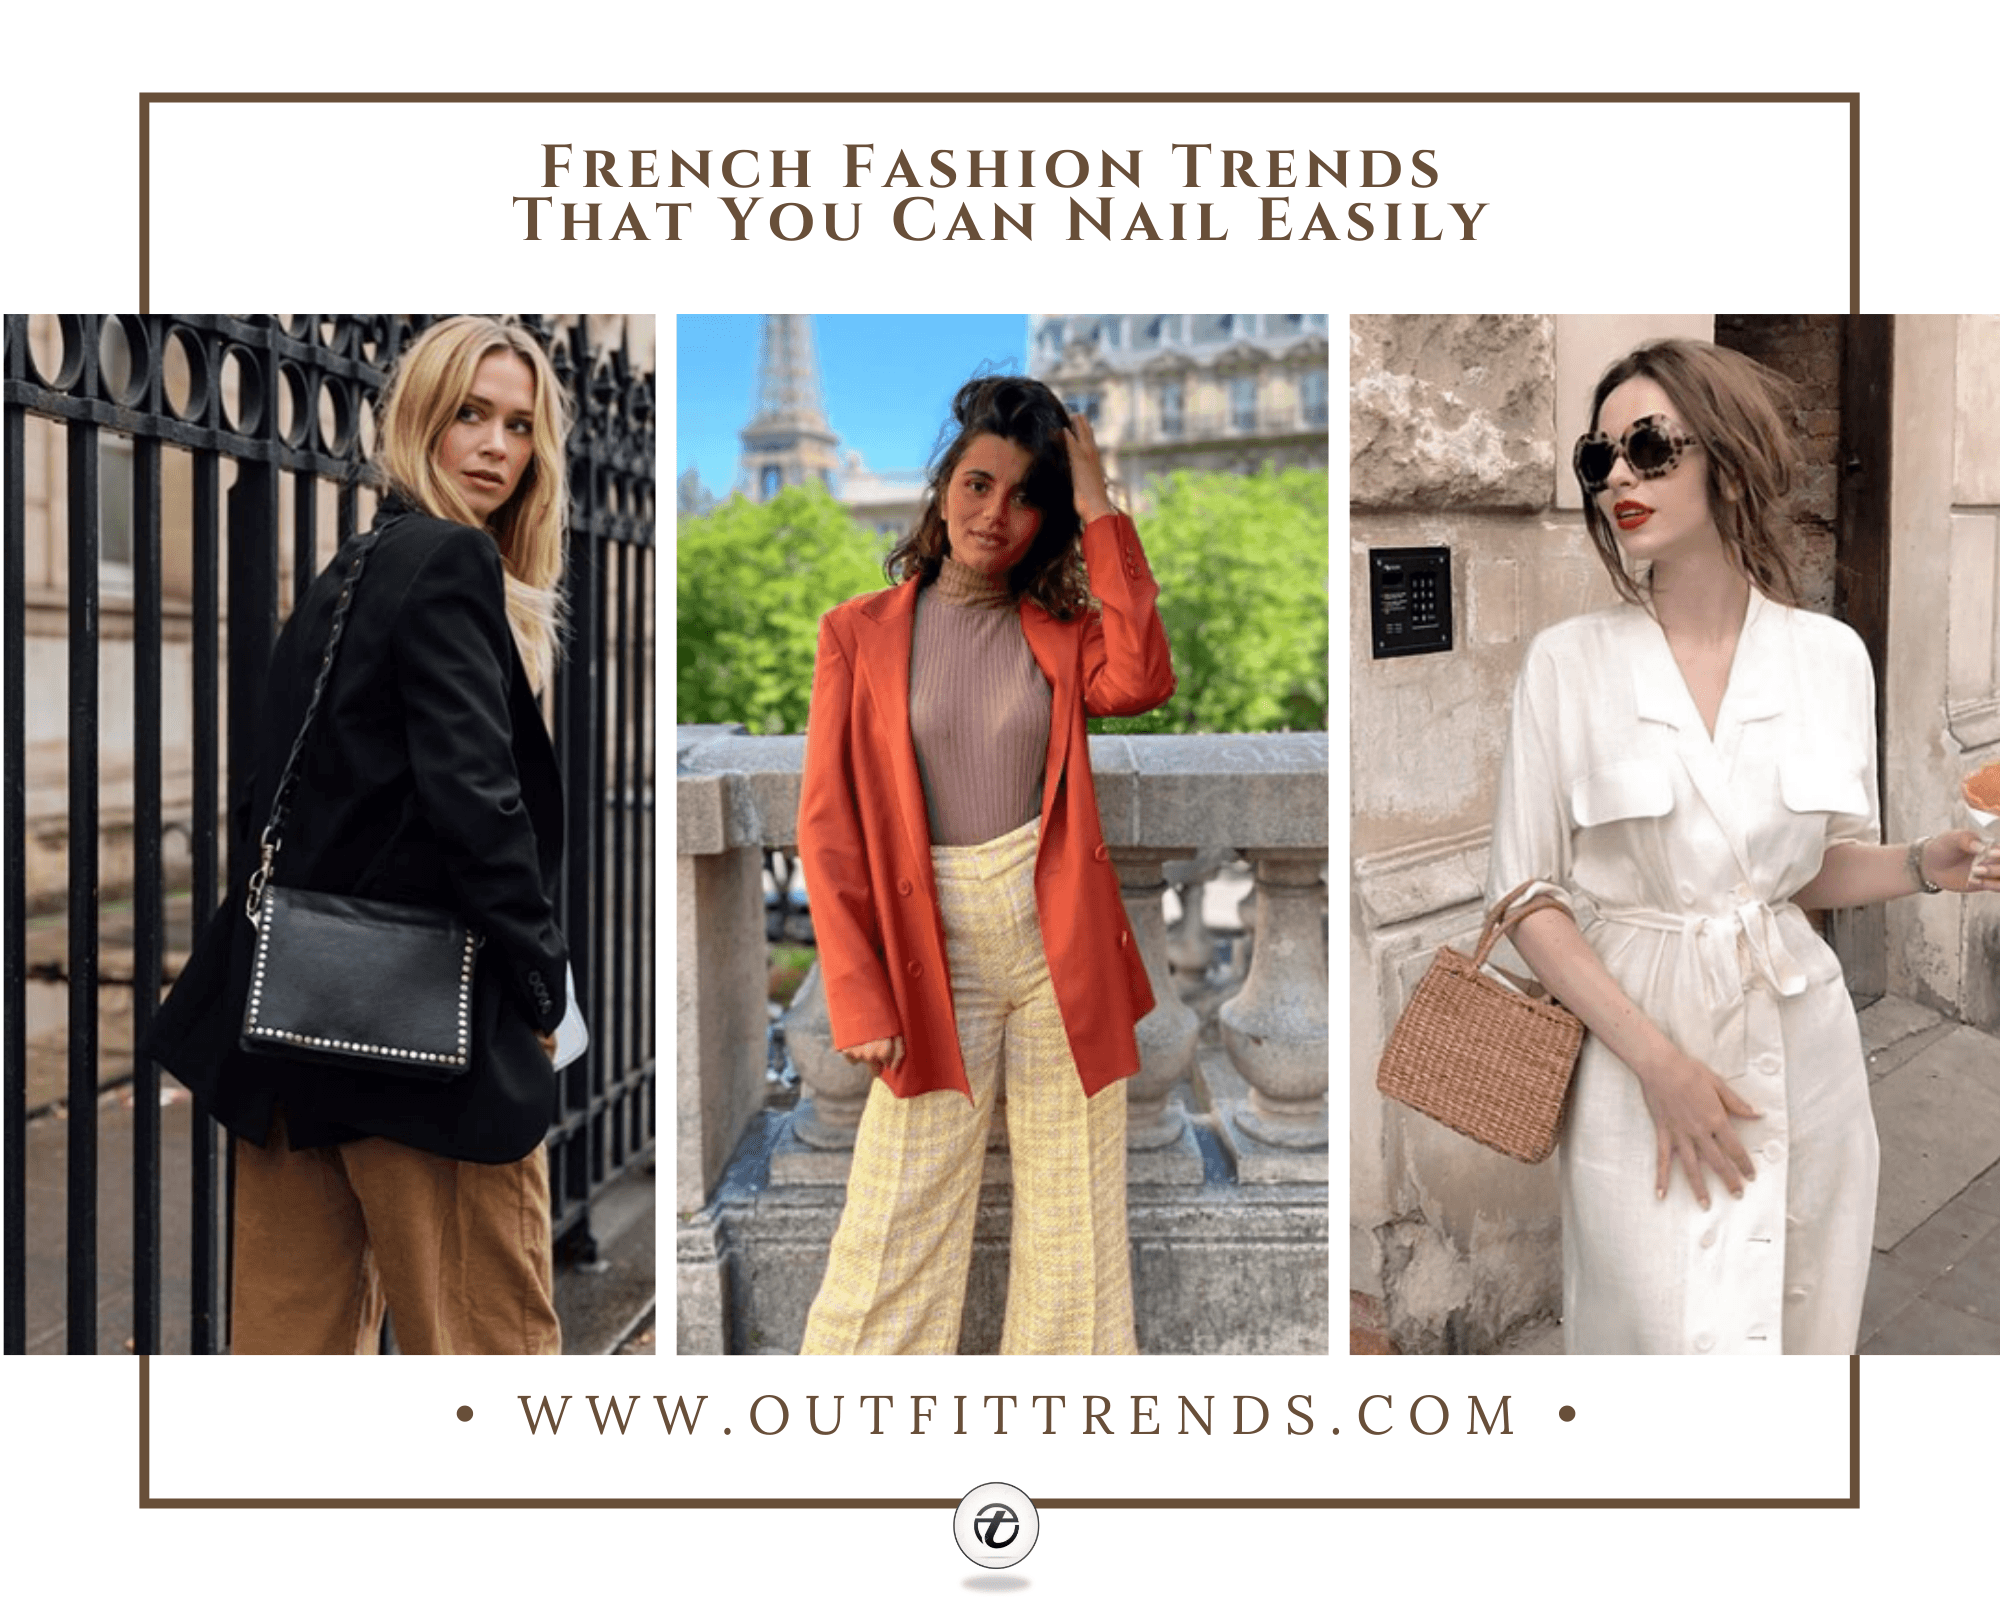 French Fashion Trends – 23 Ways to Dress Like a French Girl